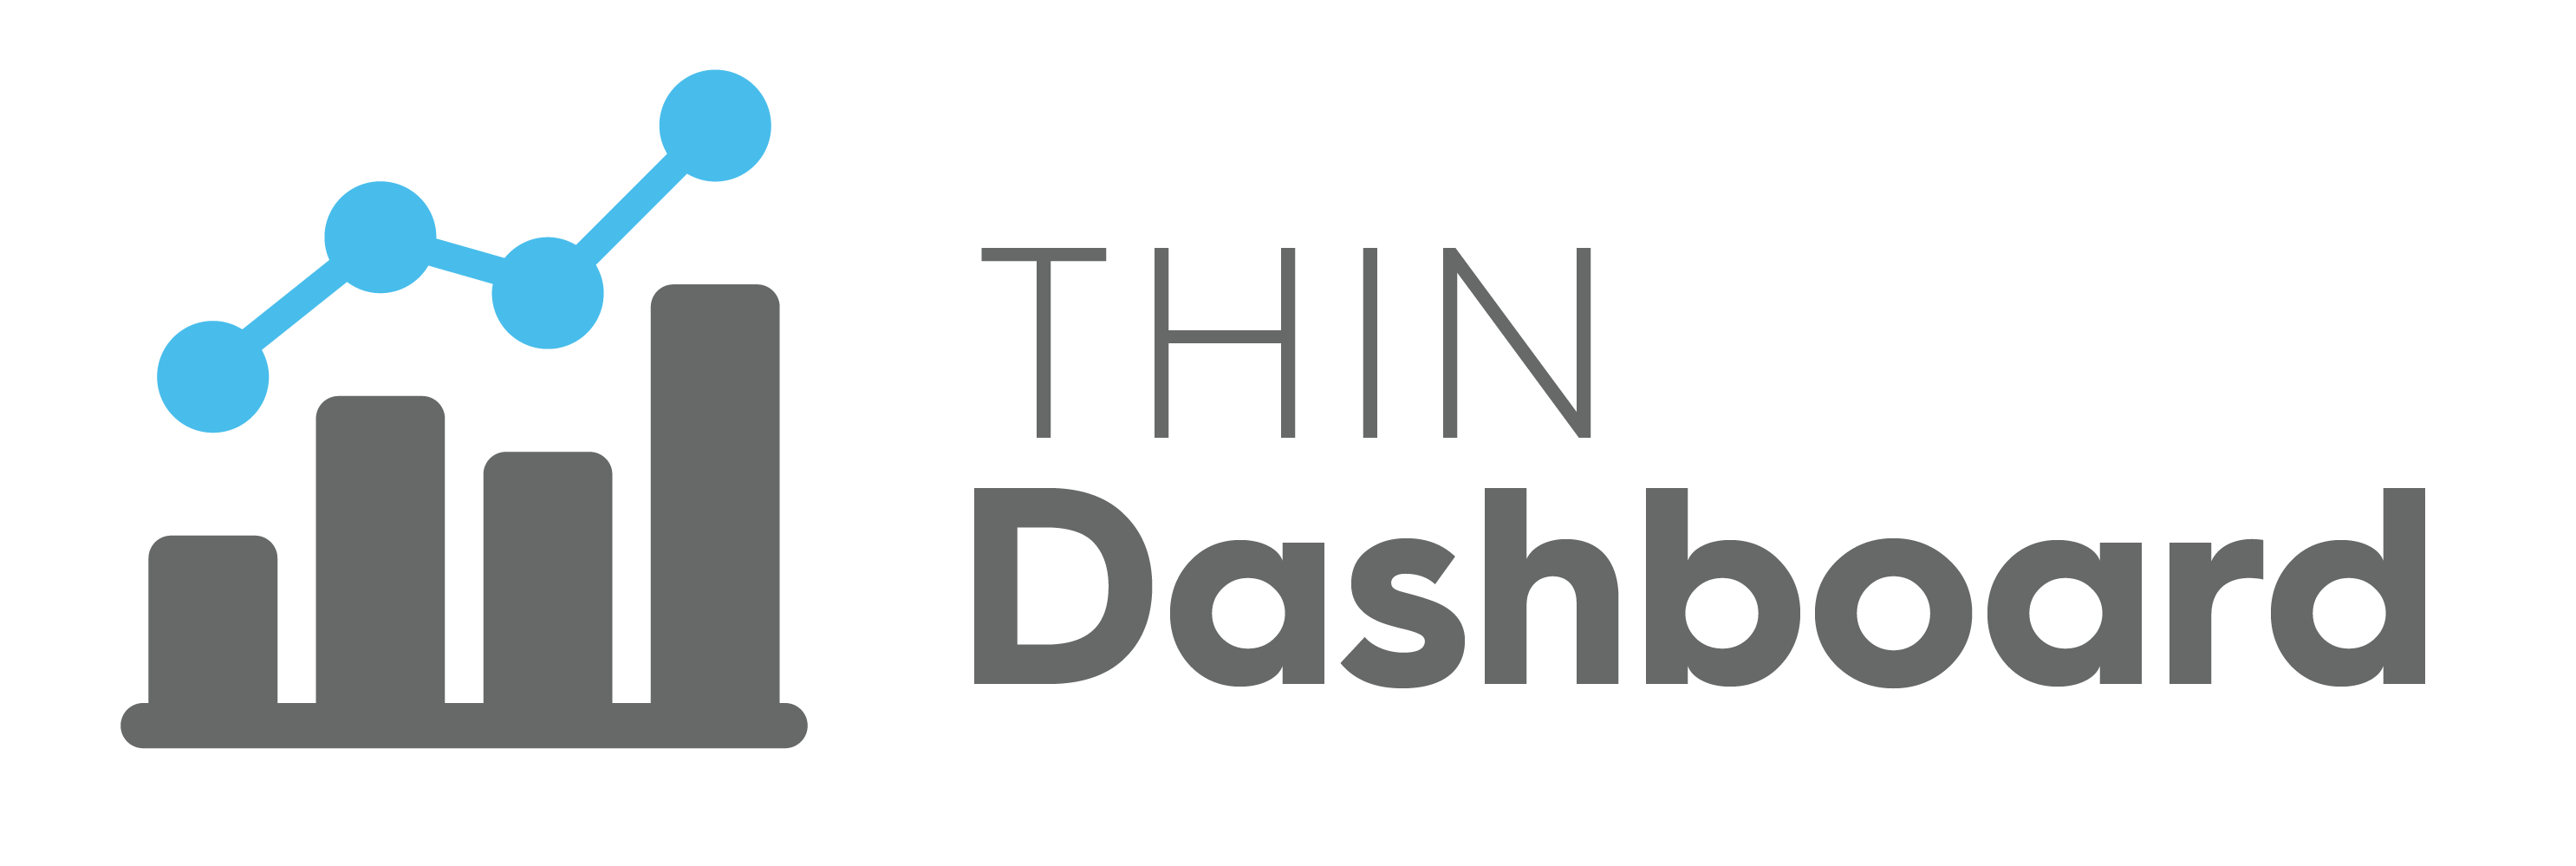 THIN Dashboard logo